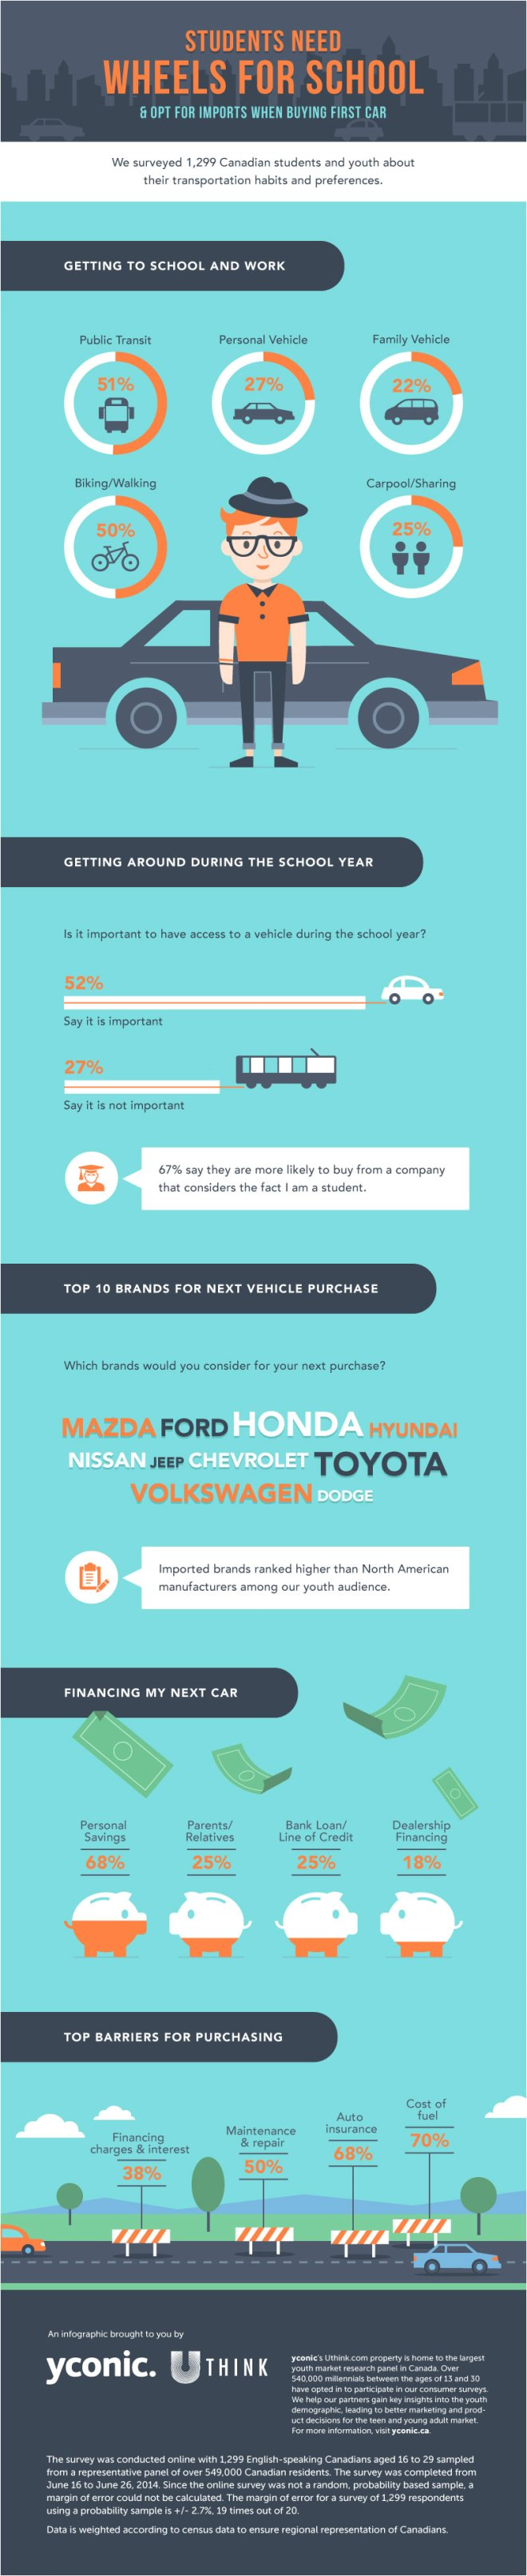 Student_Transport_Auto_Infographic